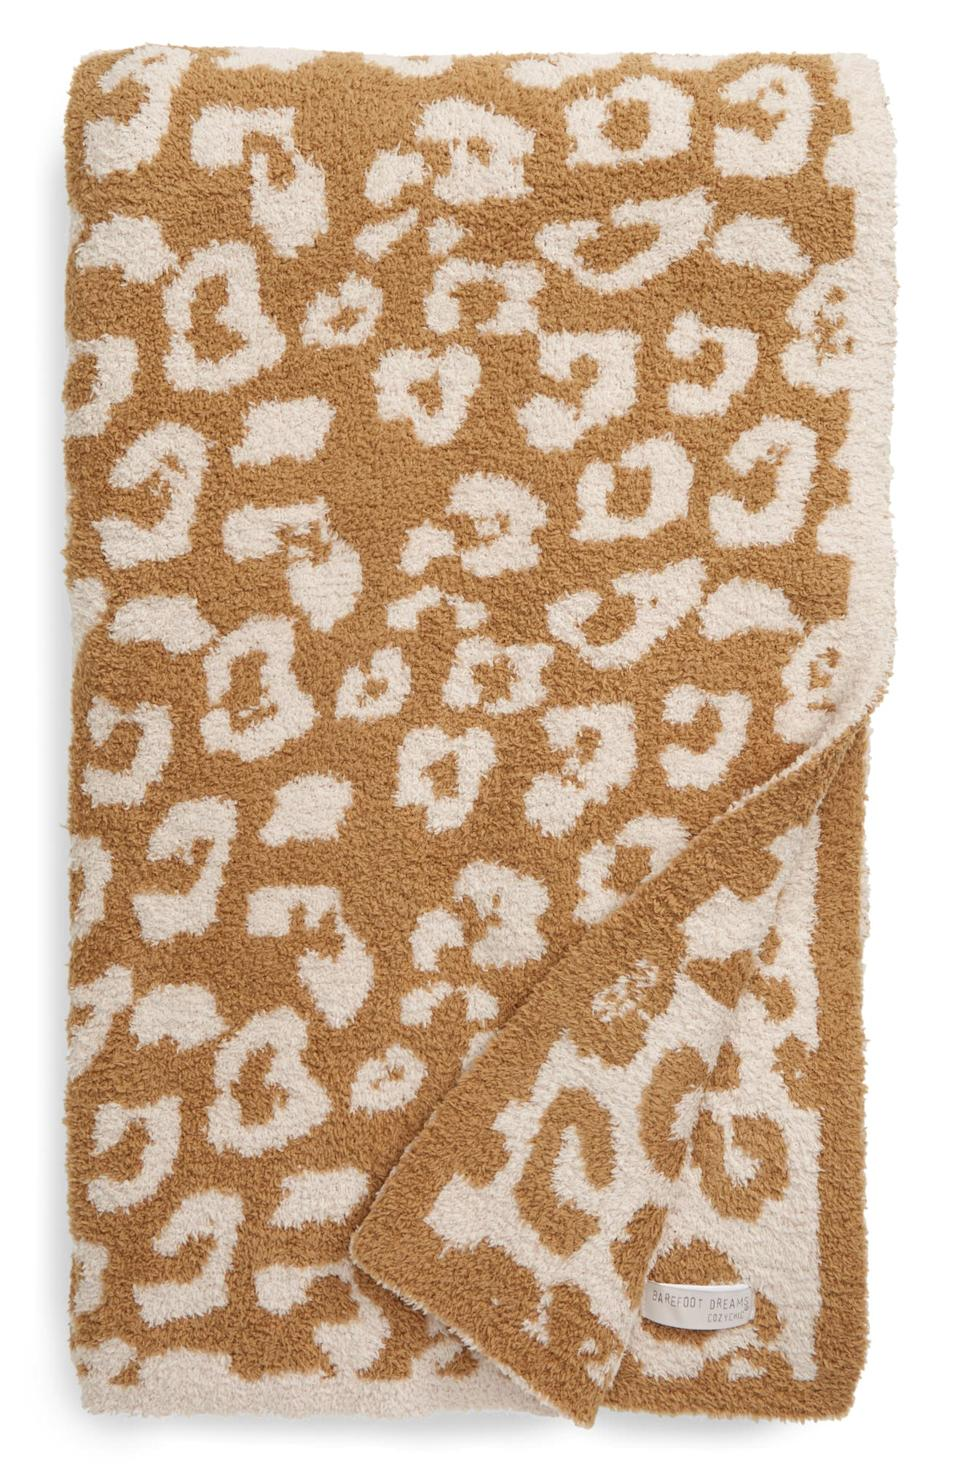 Barefoot Dreams In the Wild Throw Blanket. Image via Nordstrom.